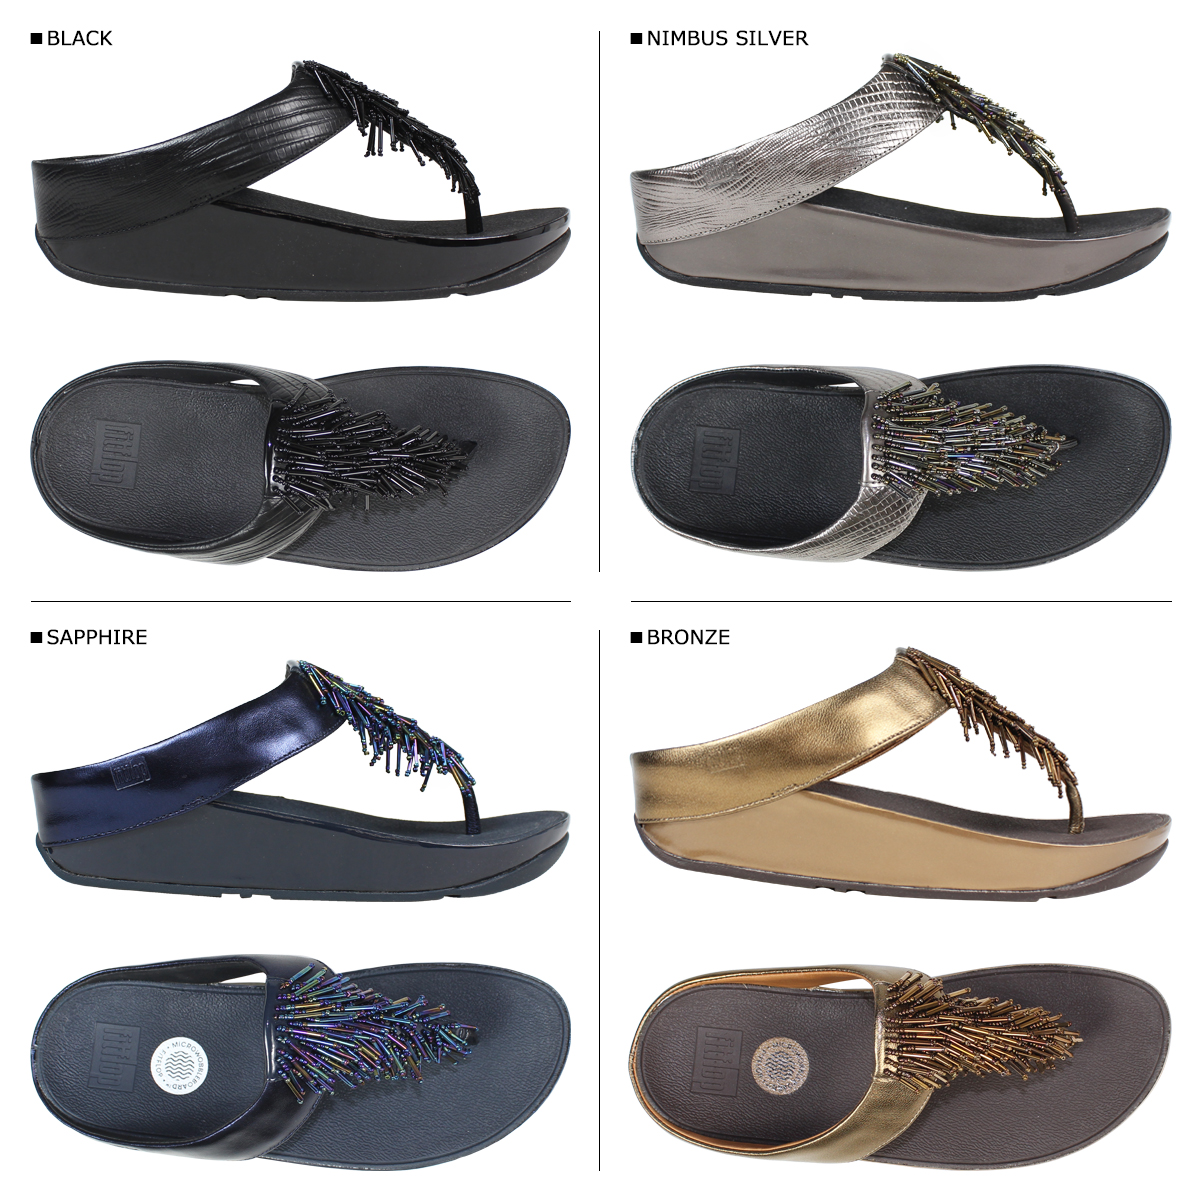 3c45a15f638dc ... the density put a diverse focus on the fit flop Sandals first. New  generation footwear brand revolutionized the modern shoe industry does not  understand ...